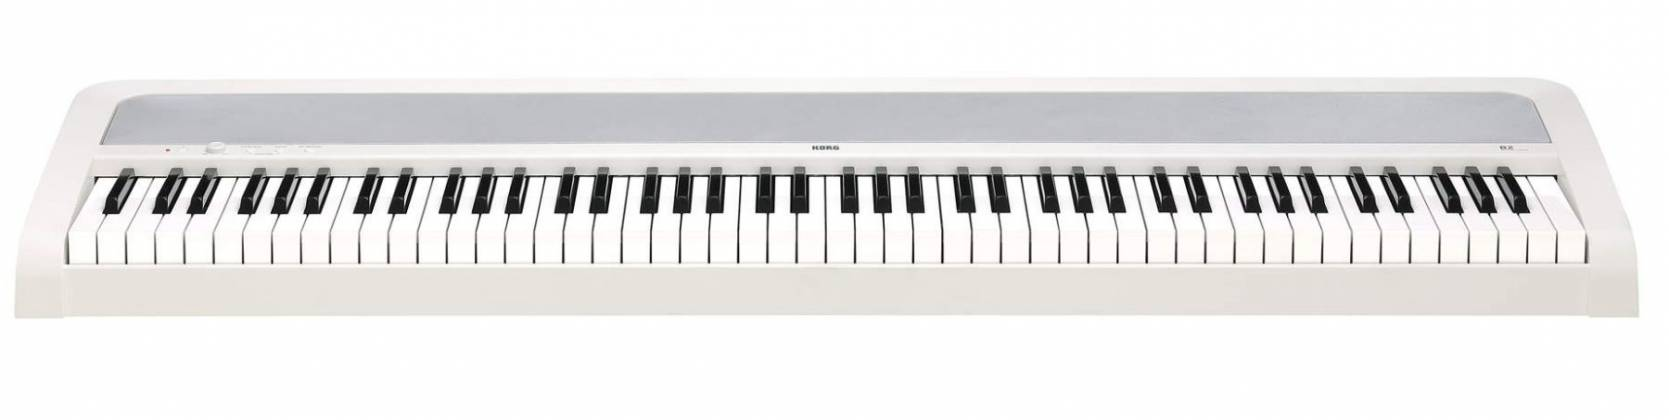 Korg Keyboards B2-WH 88-Key Hammer Action Digital Piano-White Product Image 5